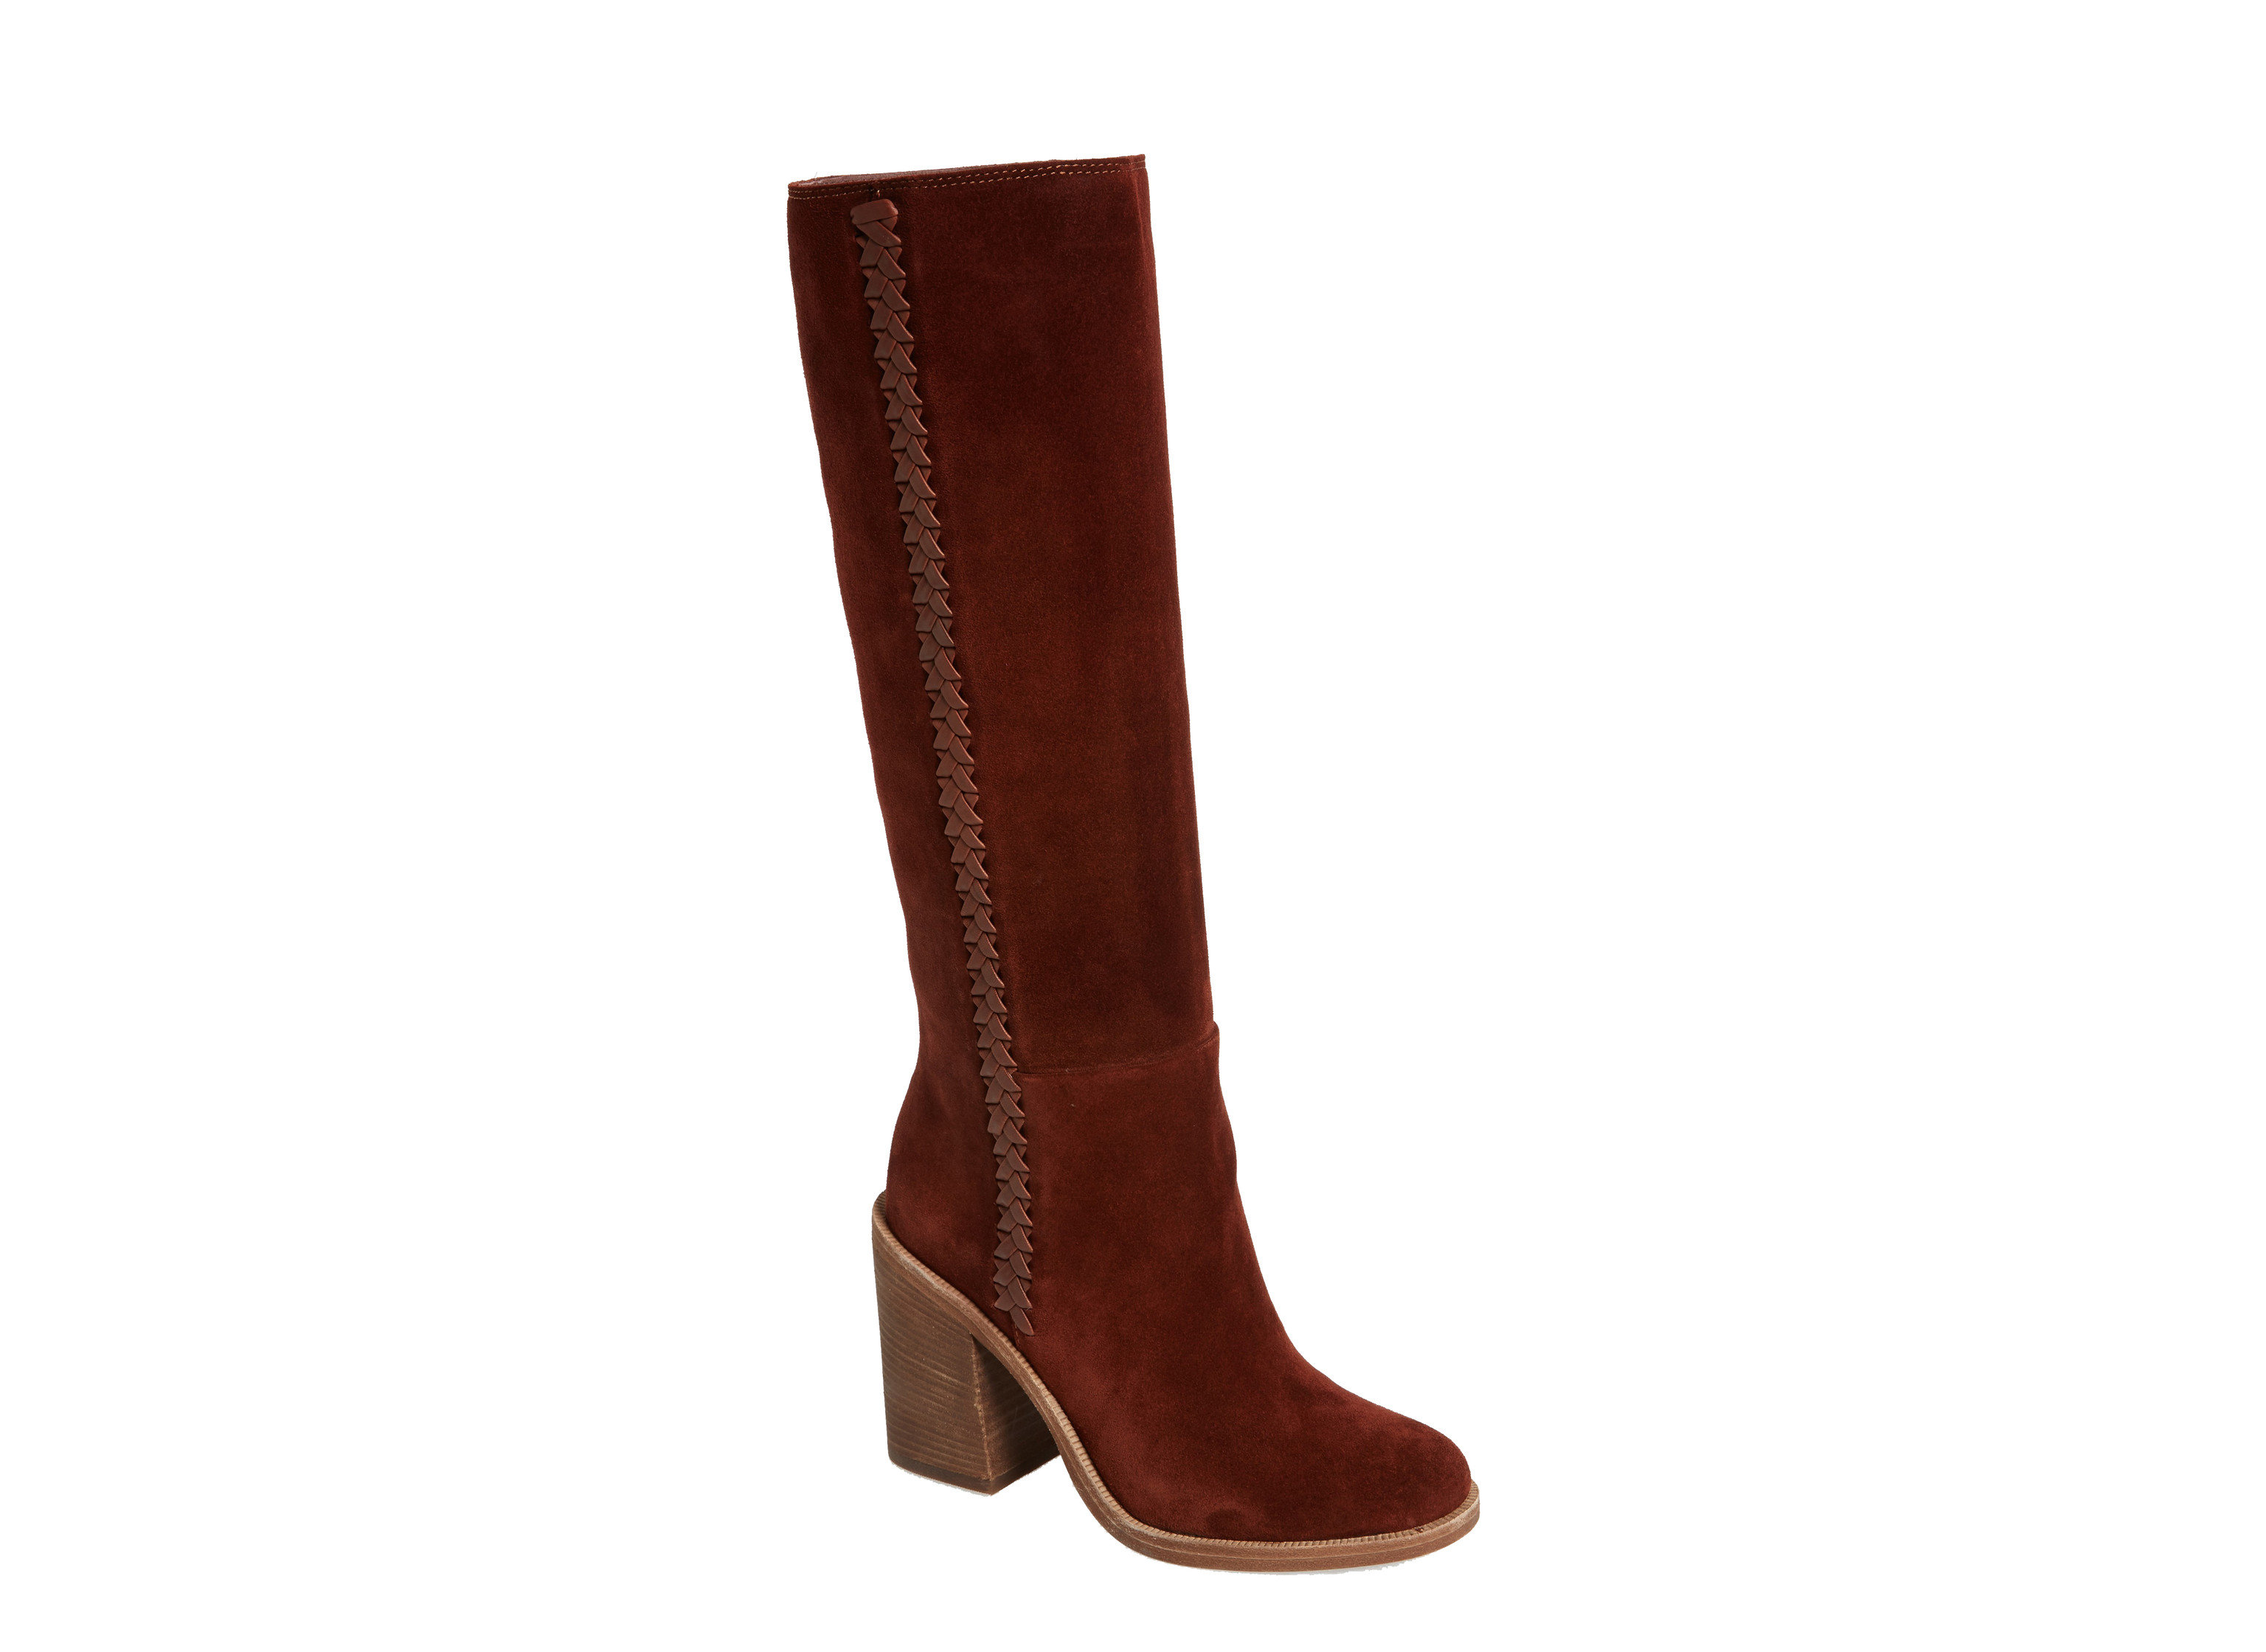 Fall Travel Style + Design Travel Shop footwear boot brown riding boot shoe suede leather high heeled footwear